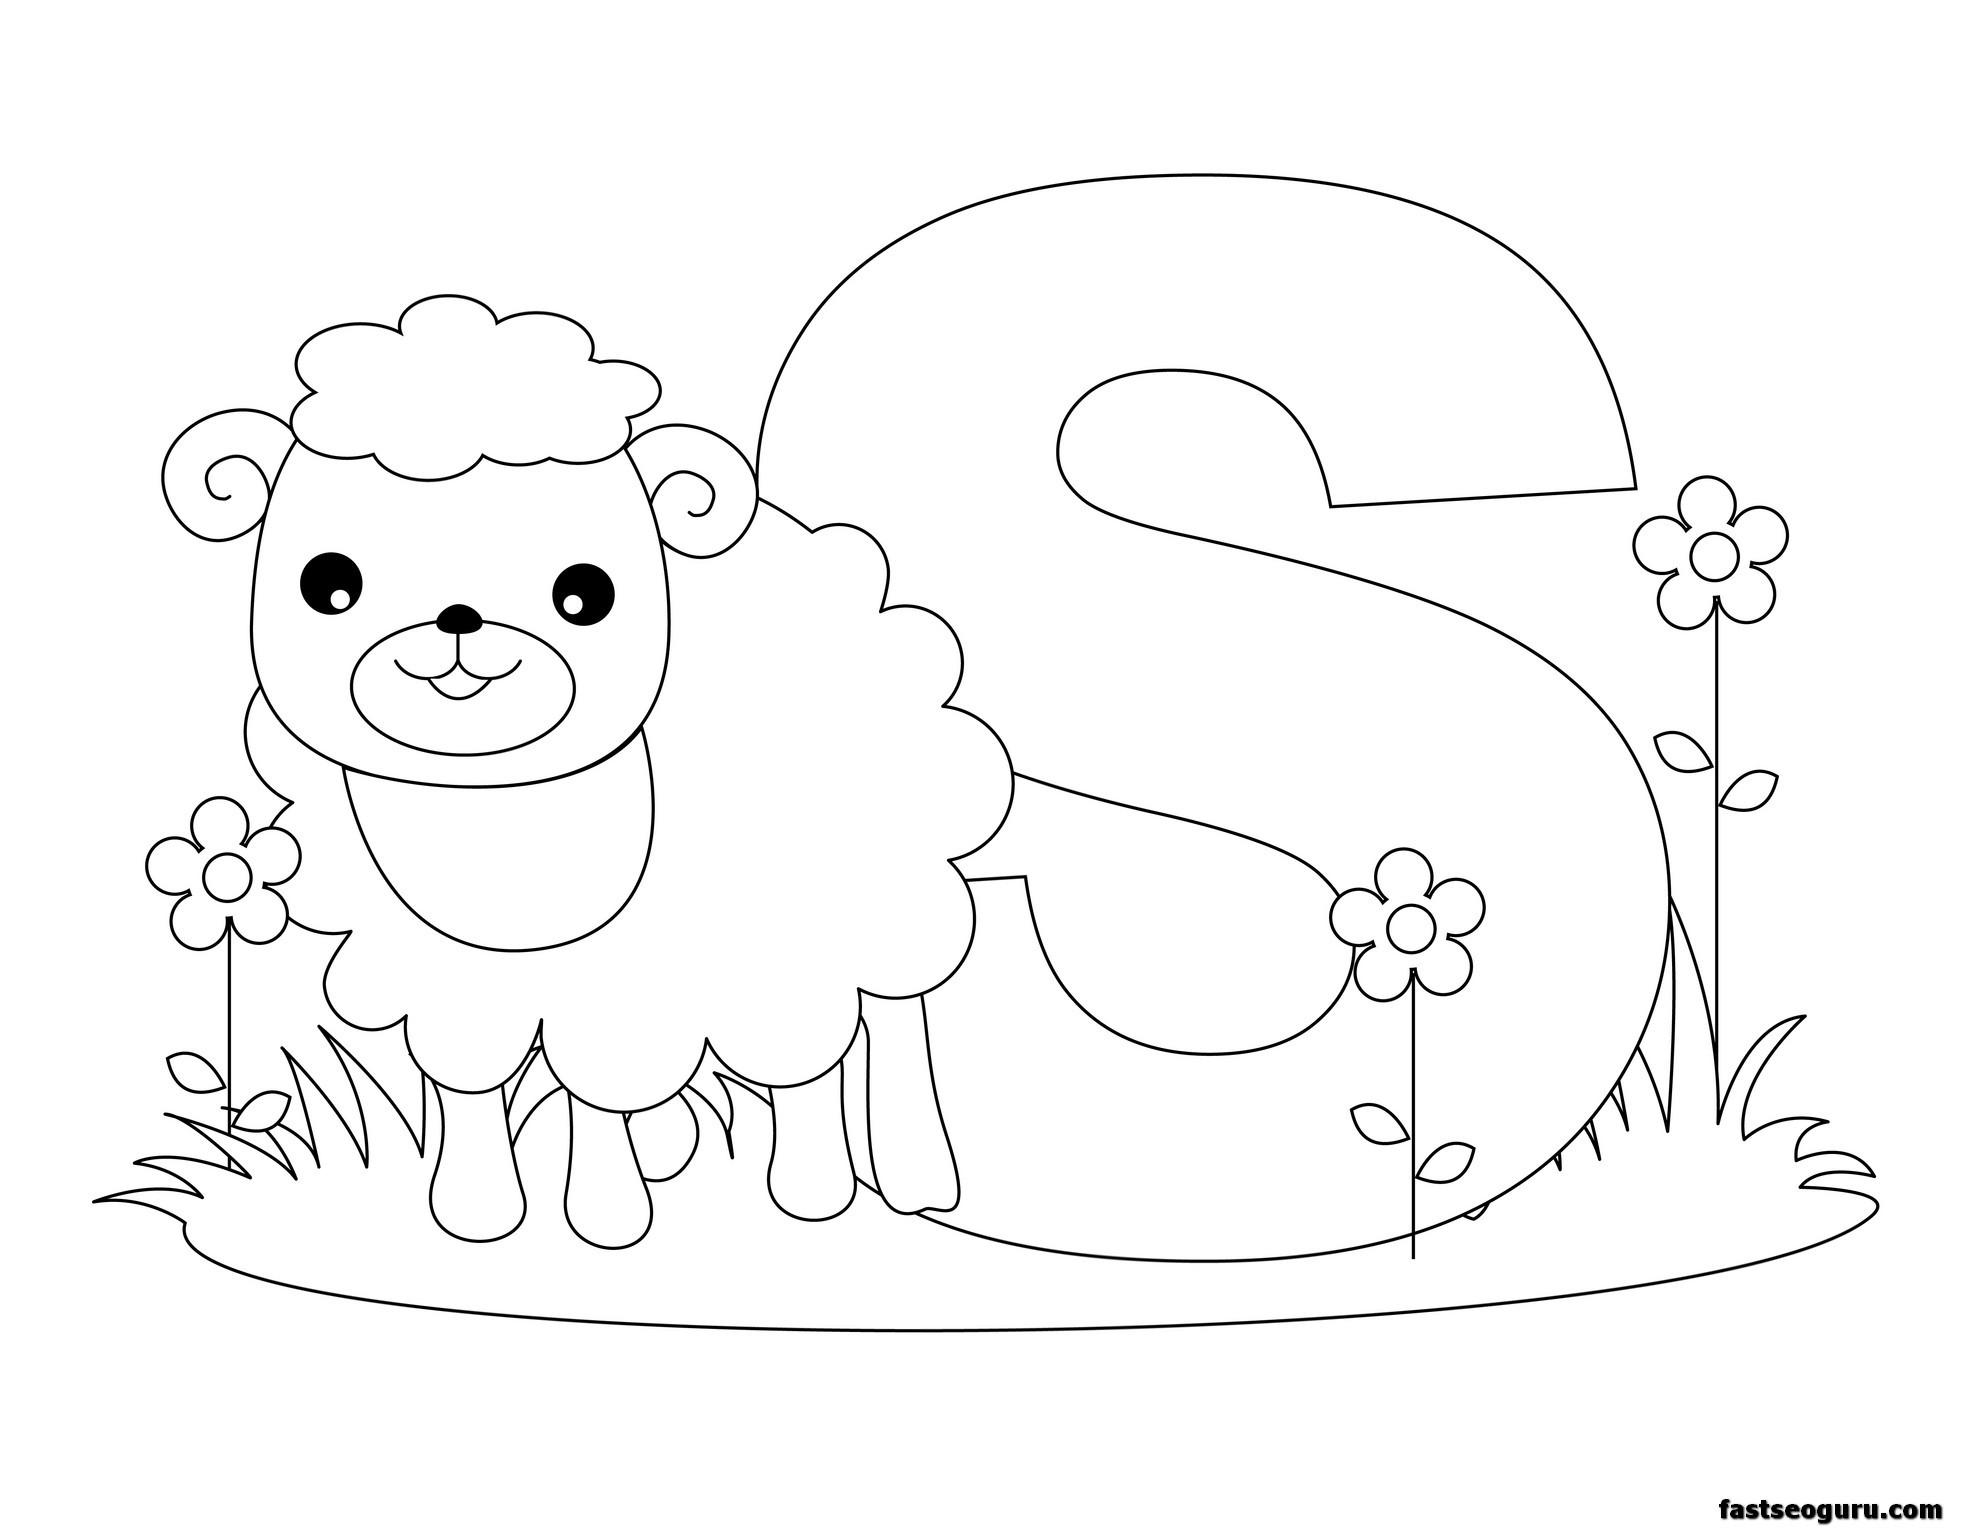 Animal Alphabet Coloring Pages Printable : Free letter s lower case coloring pages